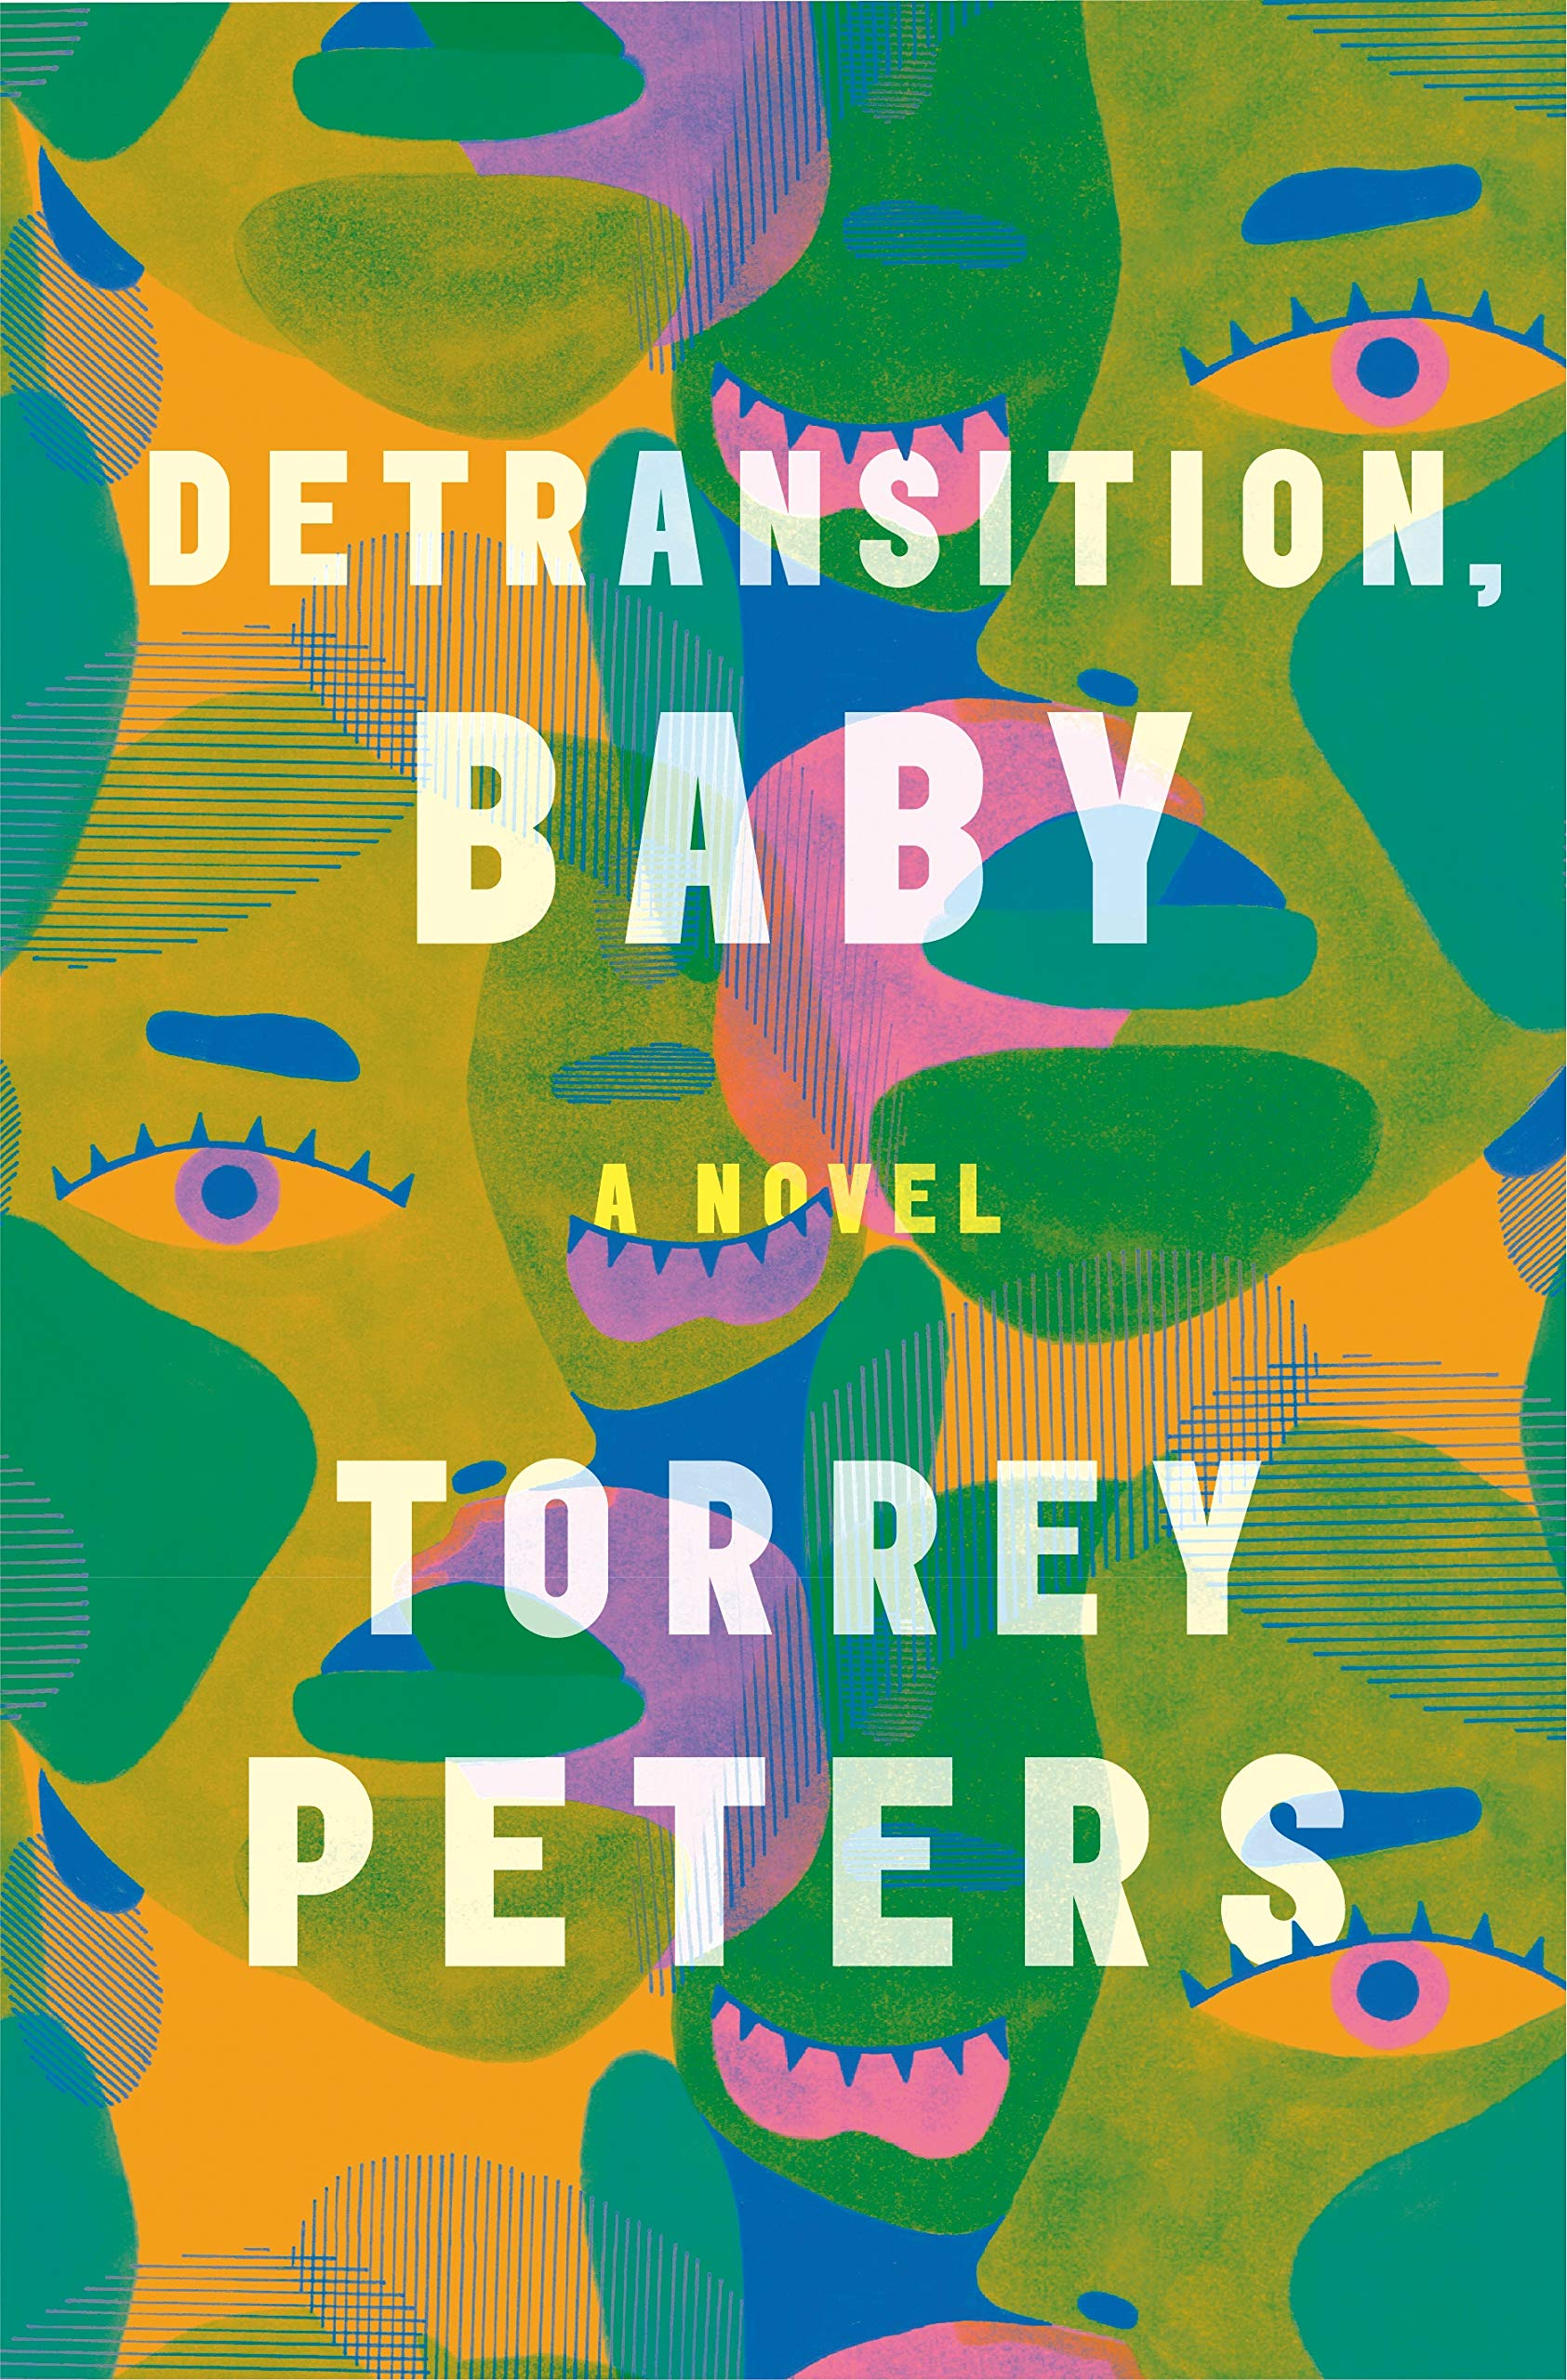 Amazon.com: Detransition, Baby: A Novel (9780593133378): Peters, Torrey:  Books